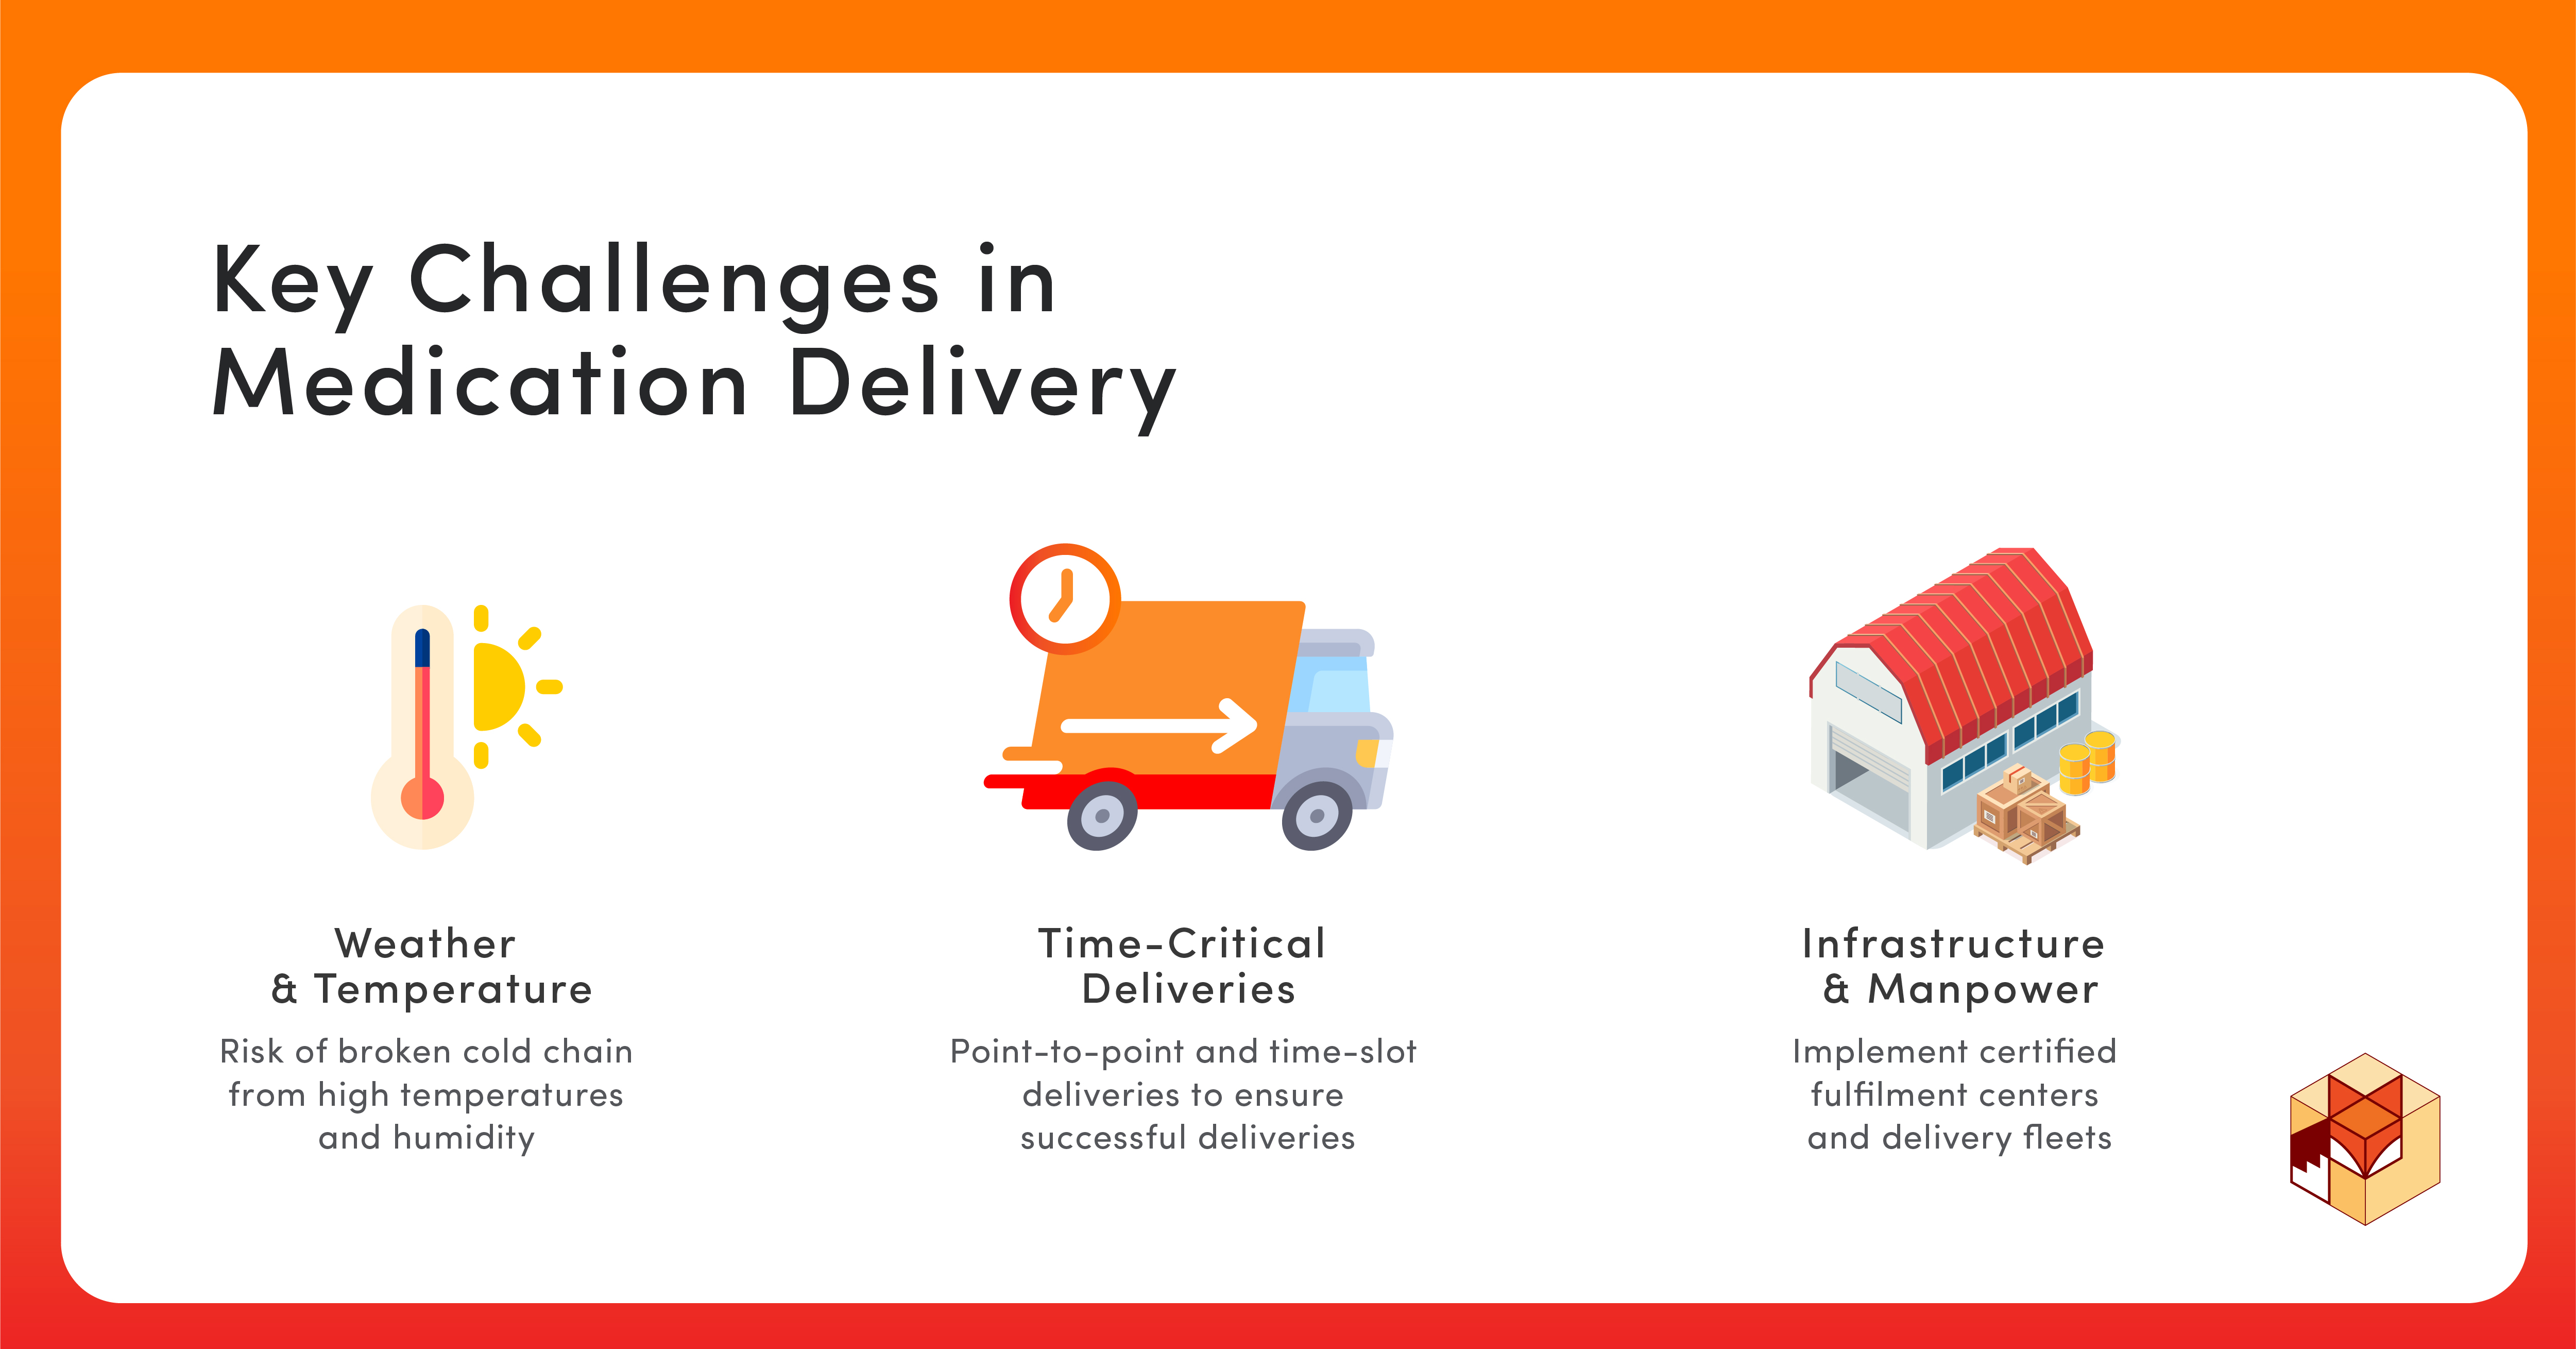 Key Challenges in Medication Delivery